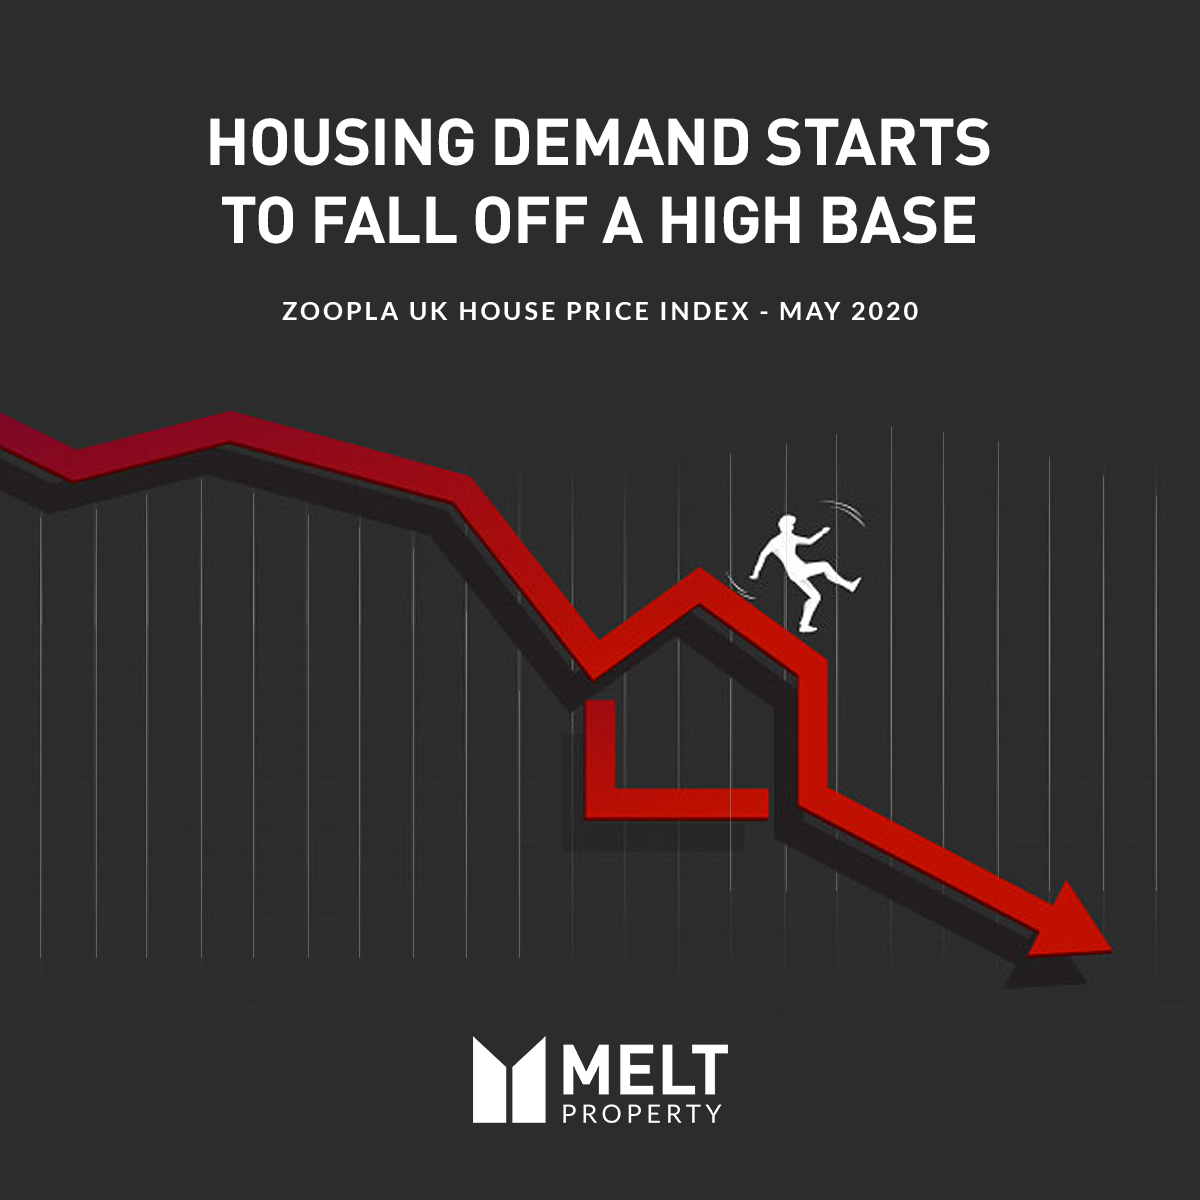 Housing demand starts to fall off a high base